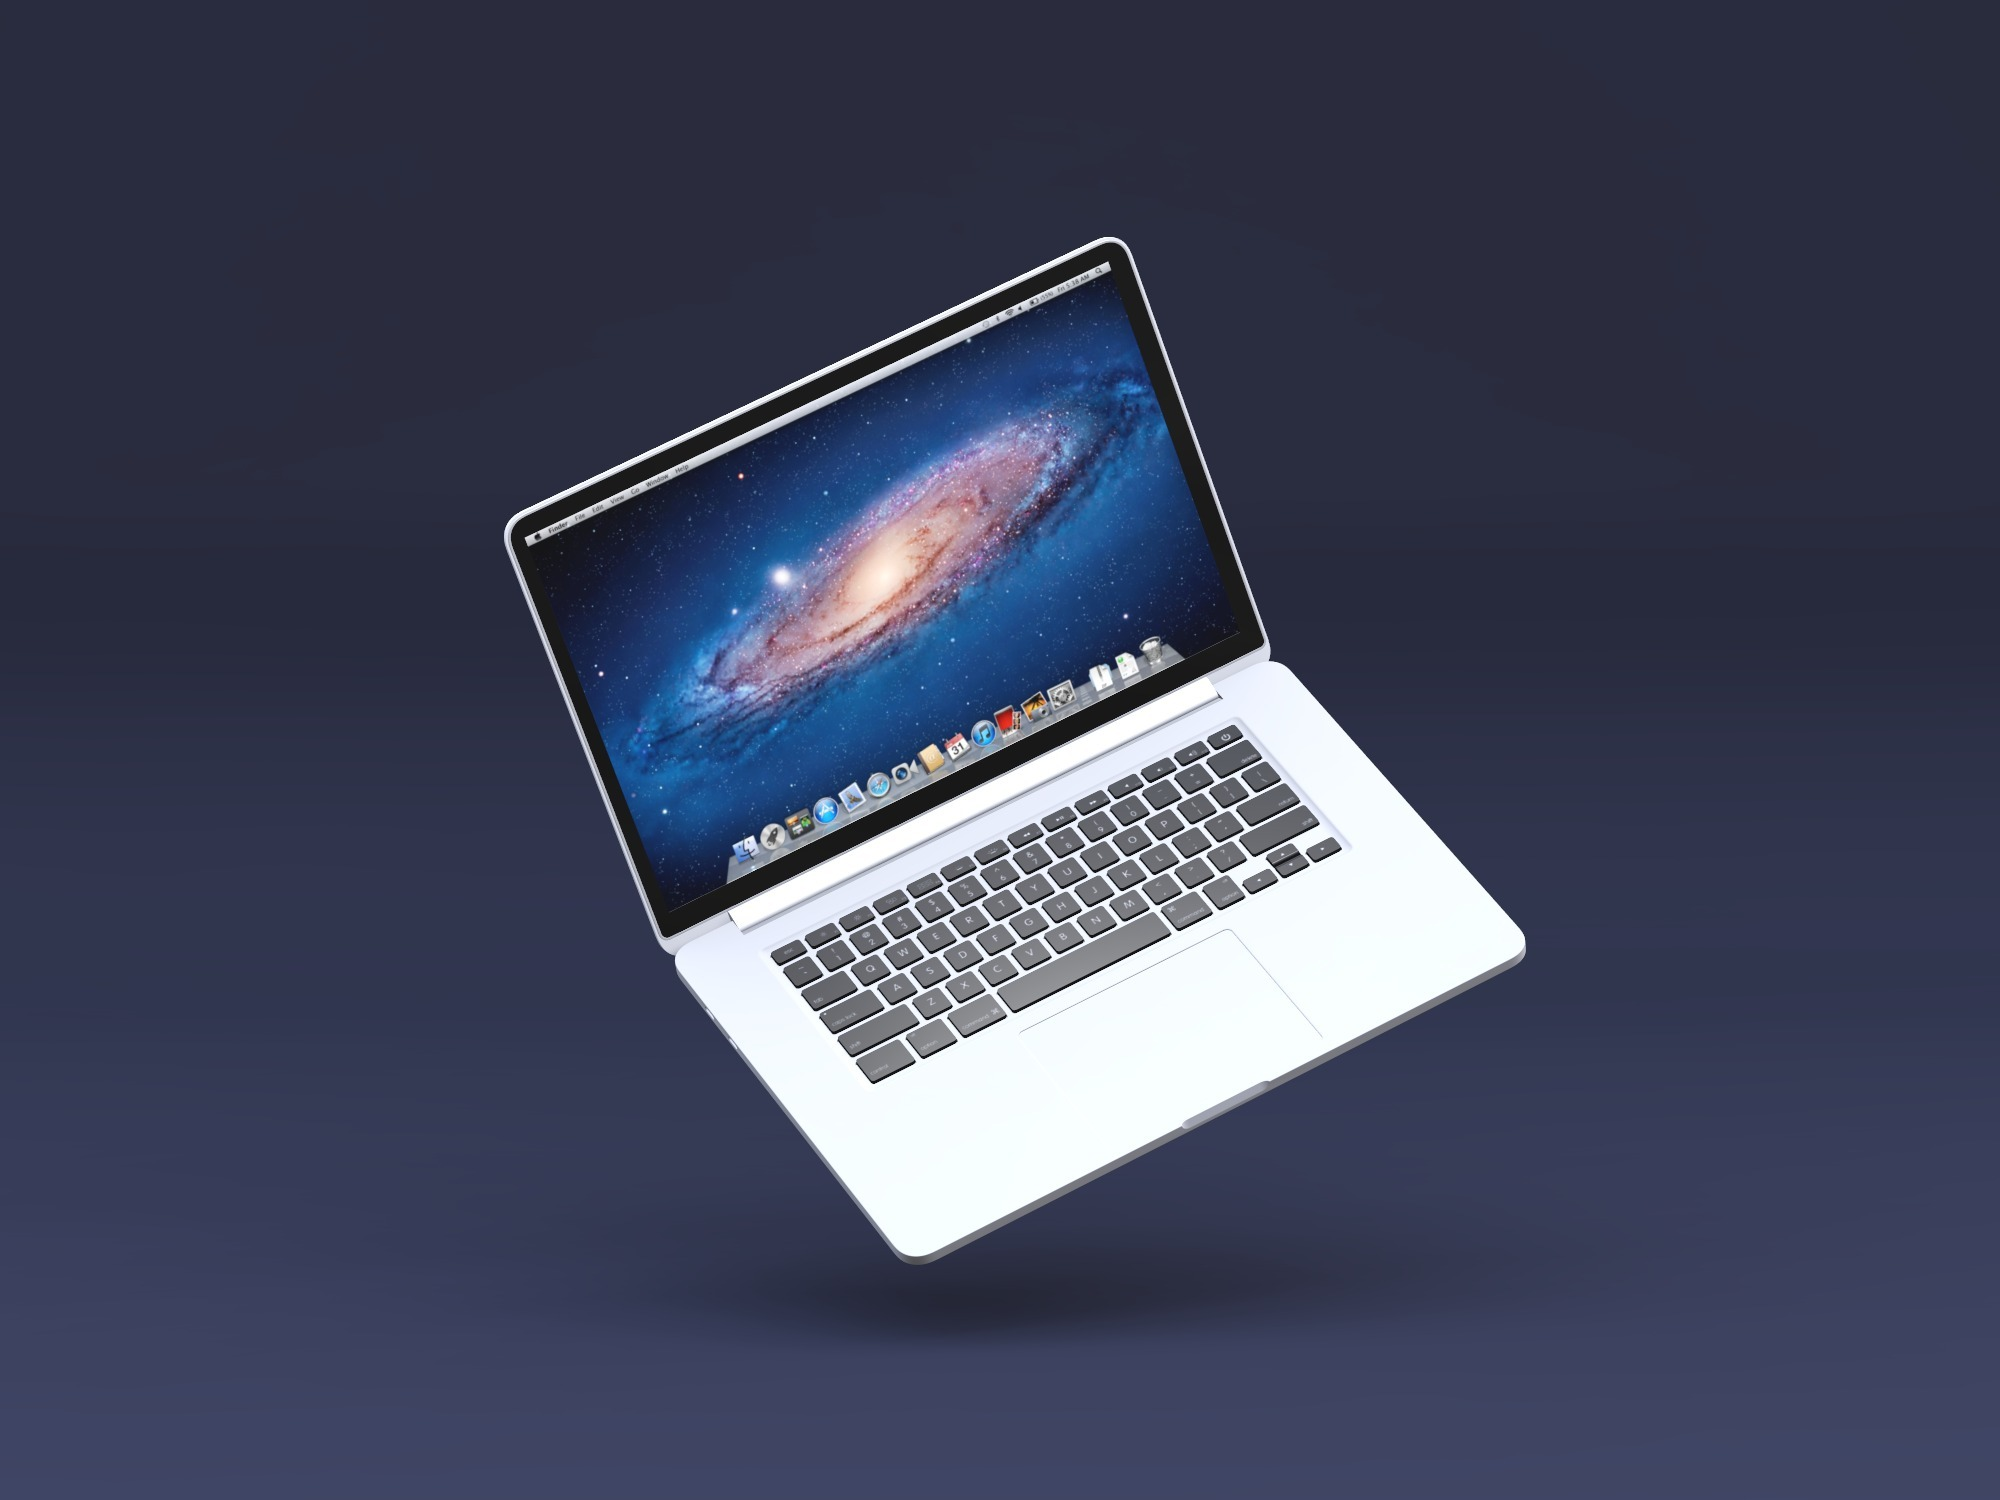 Macbook Pro floating mockup - replace image - 3D design by Vectary templates on Jul 23, 2018